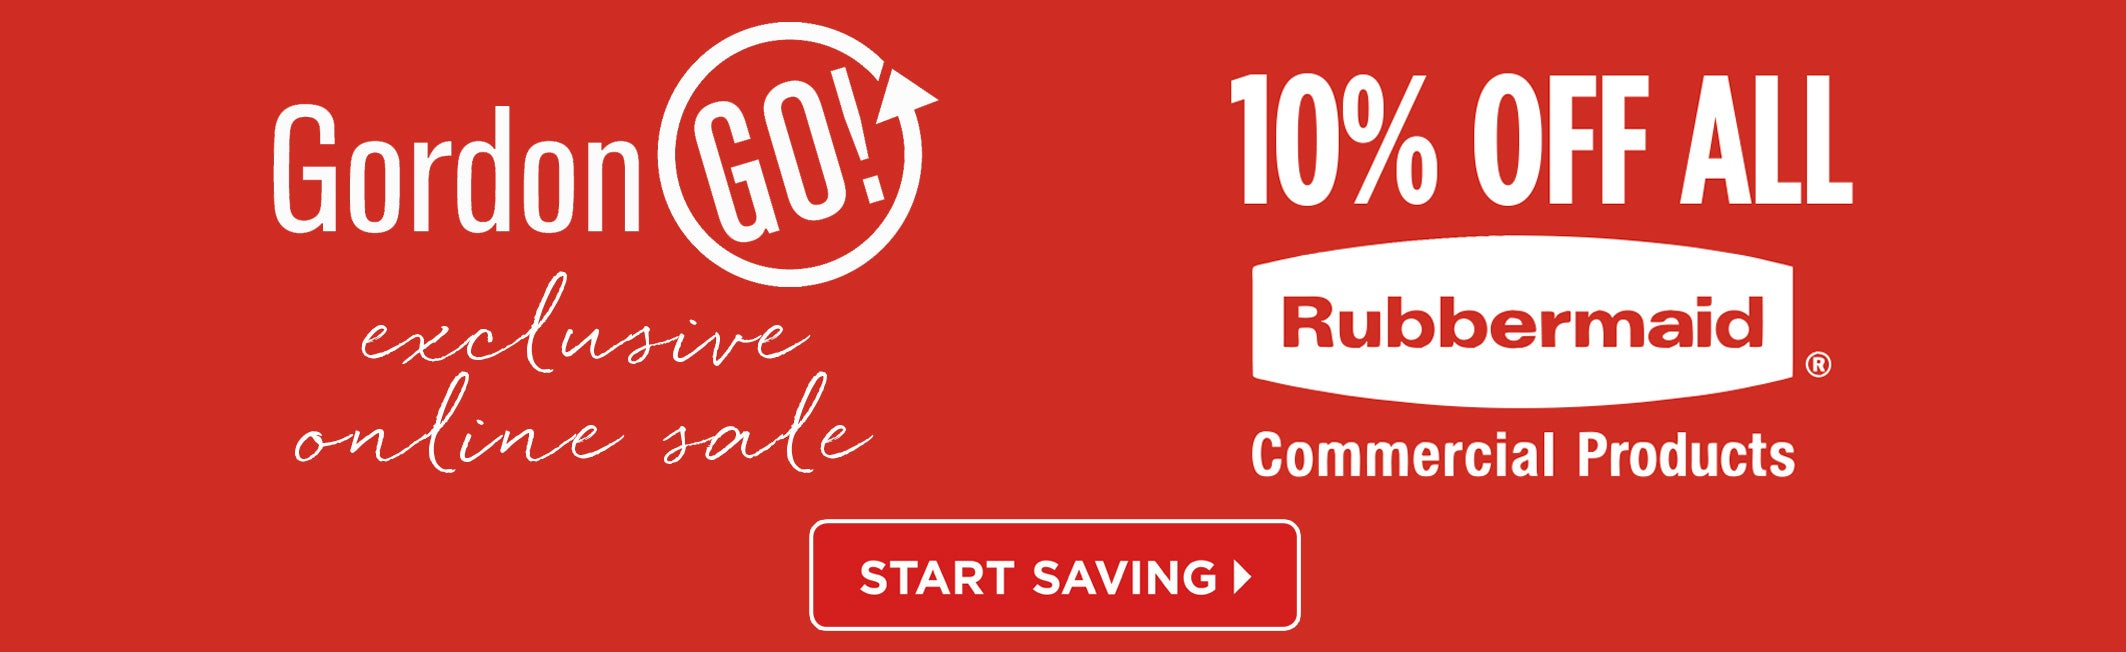 Exclusive Online Sale - 10% OFF ALL Rubbermaid Commercial Products